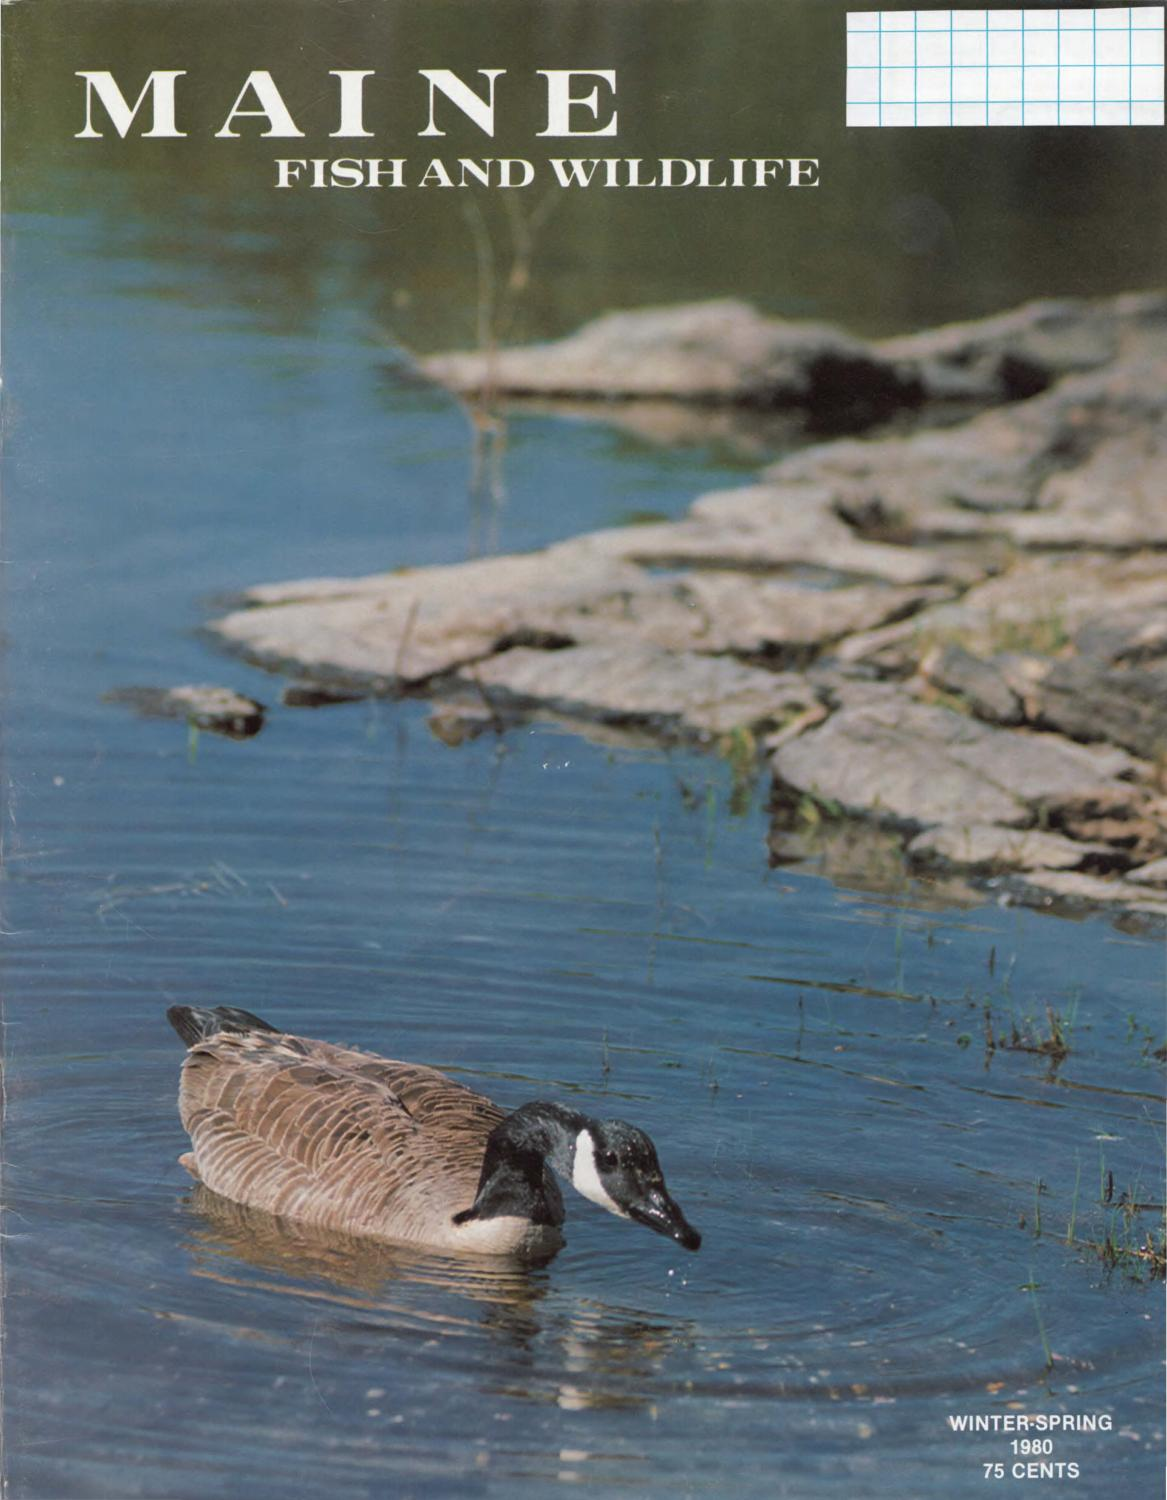 maine fish and wildlife magazine winter spring 1980 by